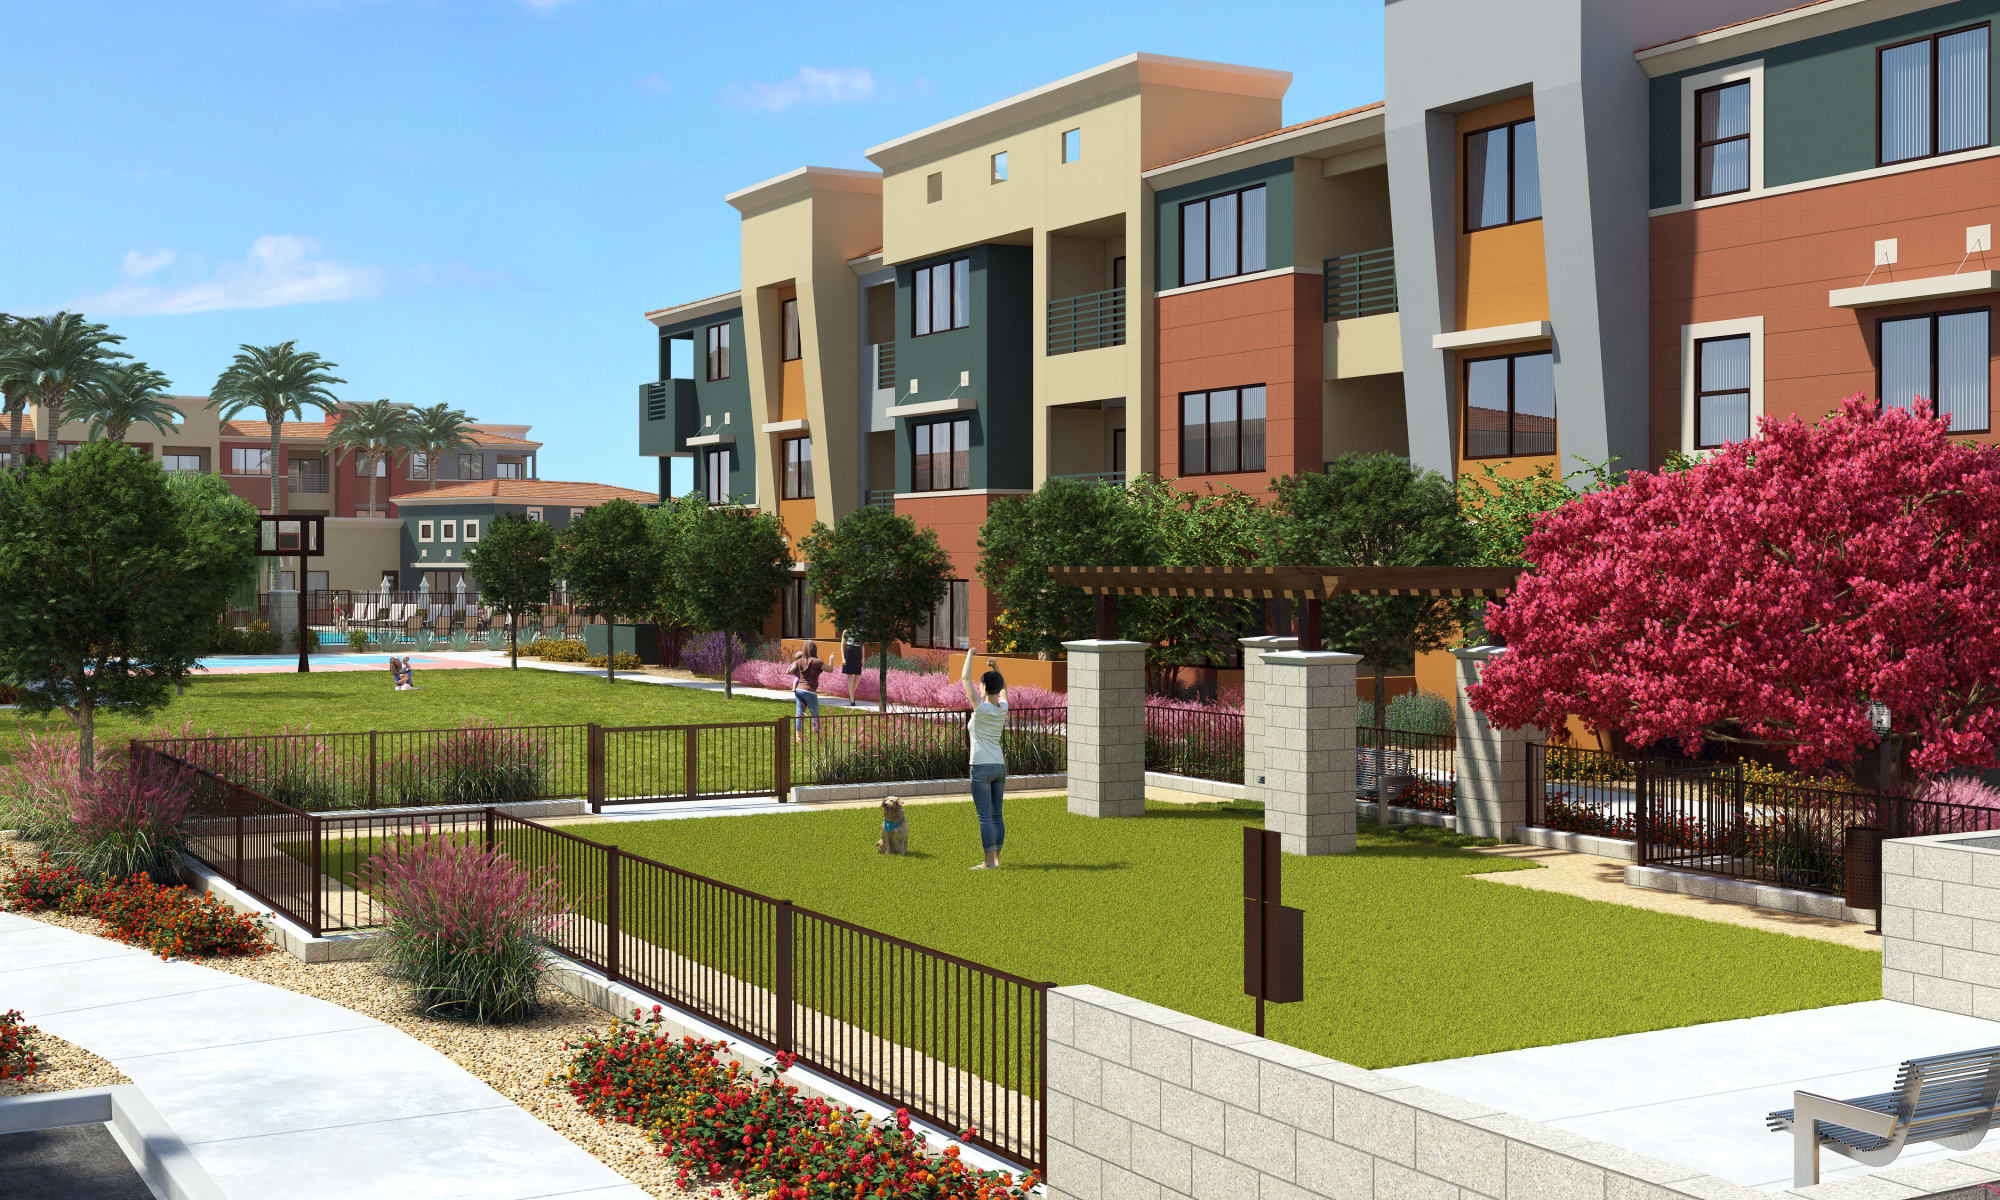 Render of exterior with well manicured walk-ways at Villa Vita Apartments in Peoria, Arizona